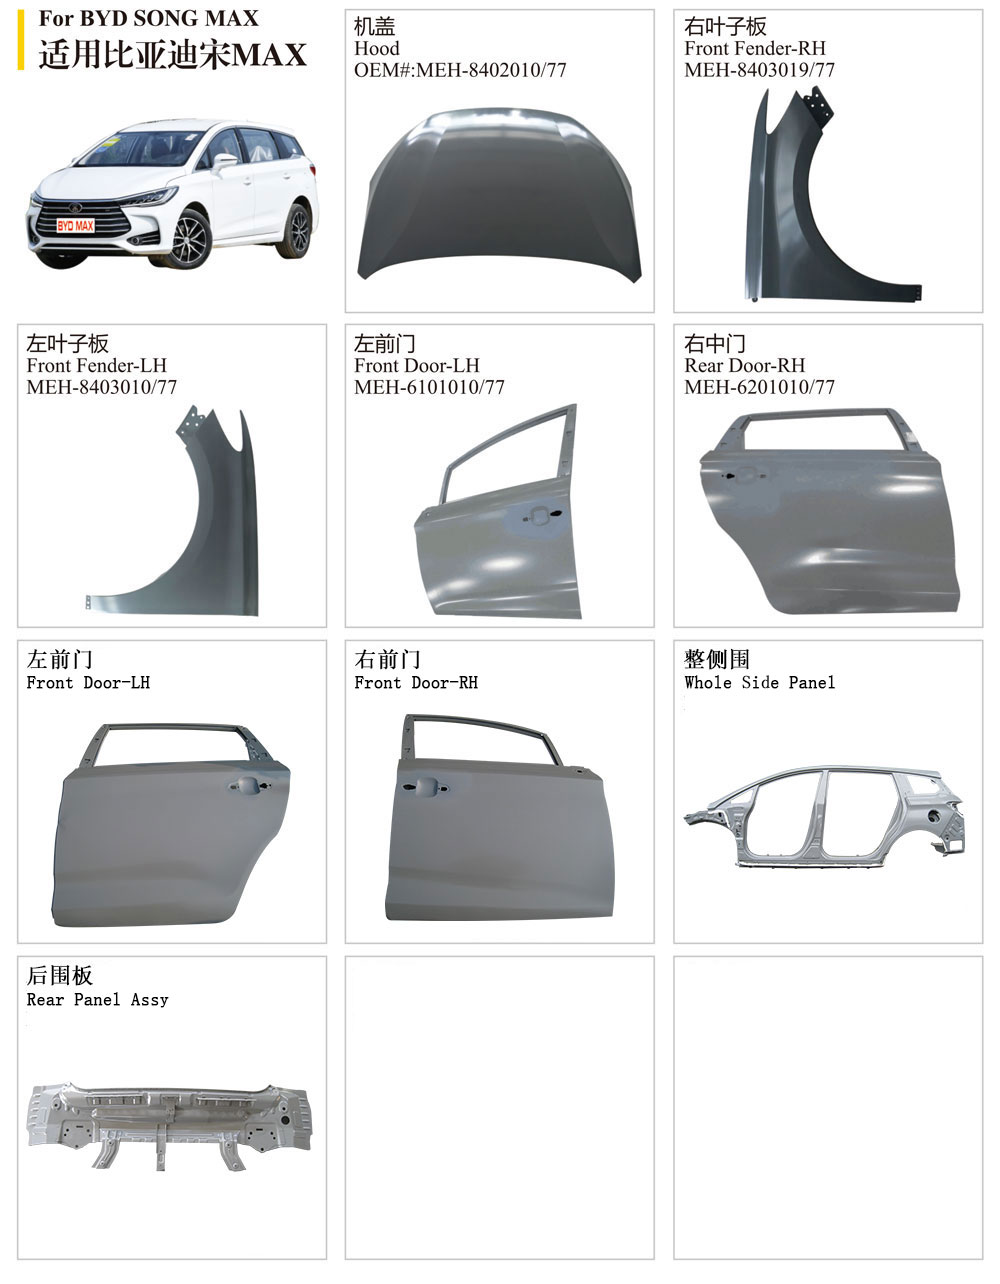 Byd Song Max Front Fender